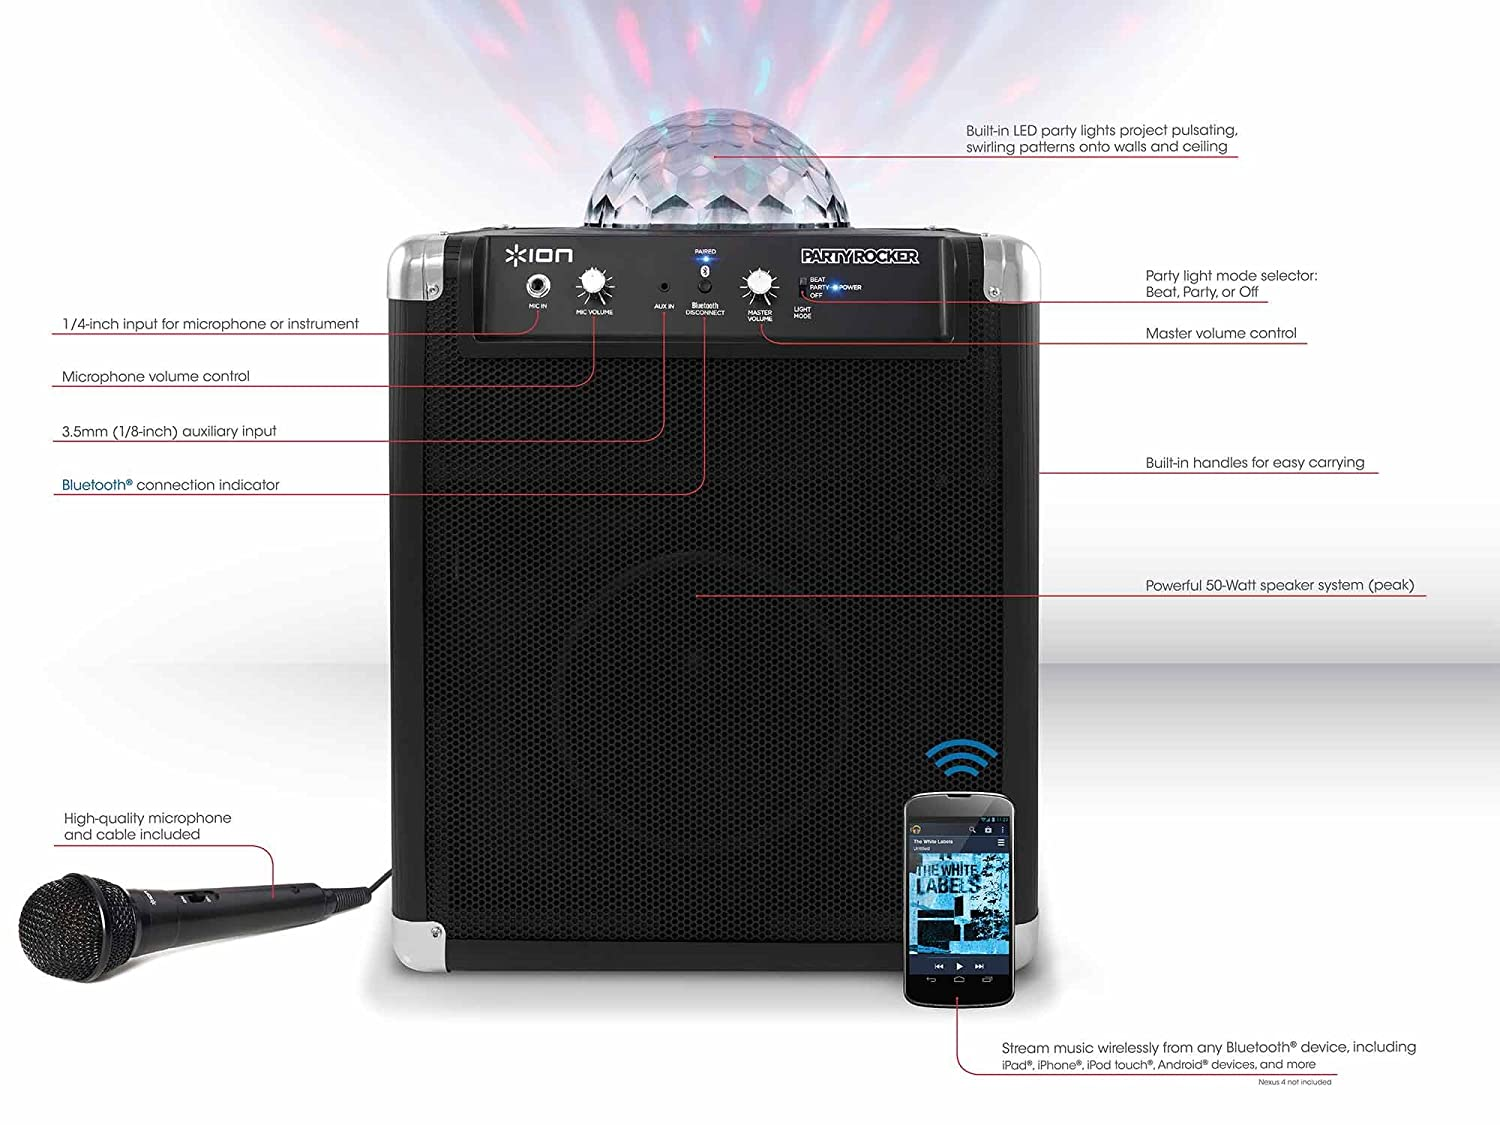 810poUTA85L._SL1500_ amazon com ion party rocker portable bluetooth speaker system  at mifinder.co